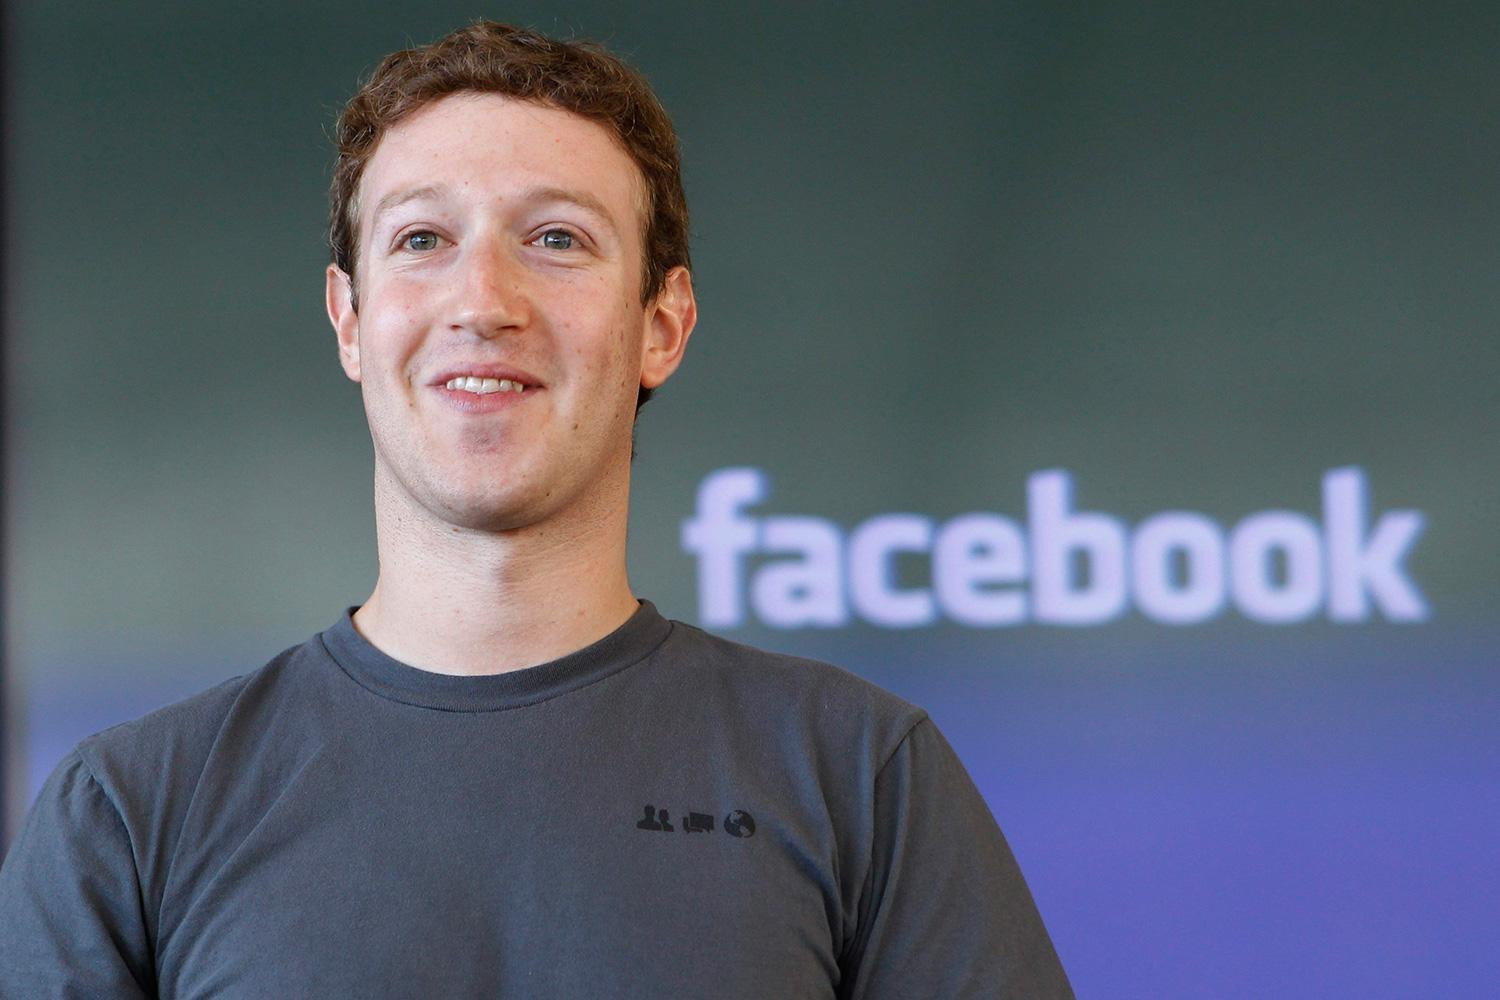 Zuckerberg demos new features that could be hitting Facebook in 2017